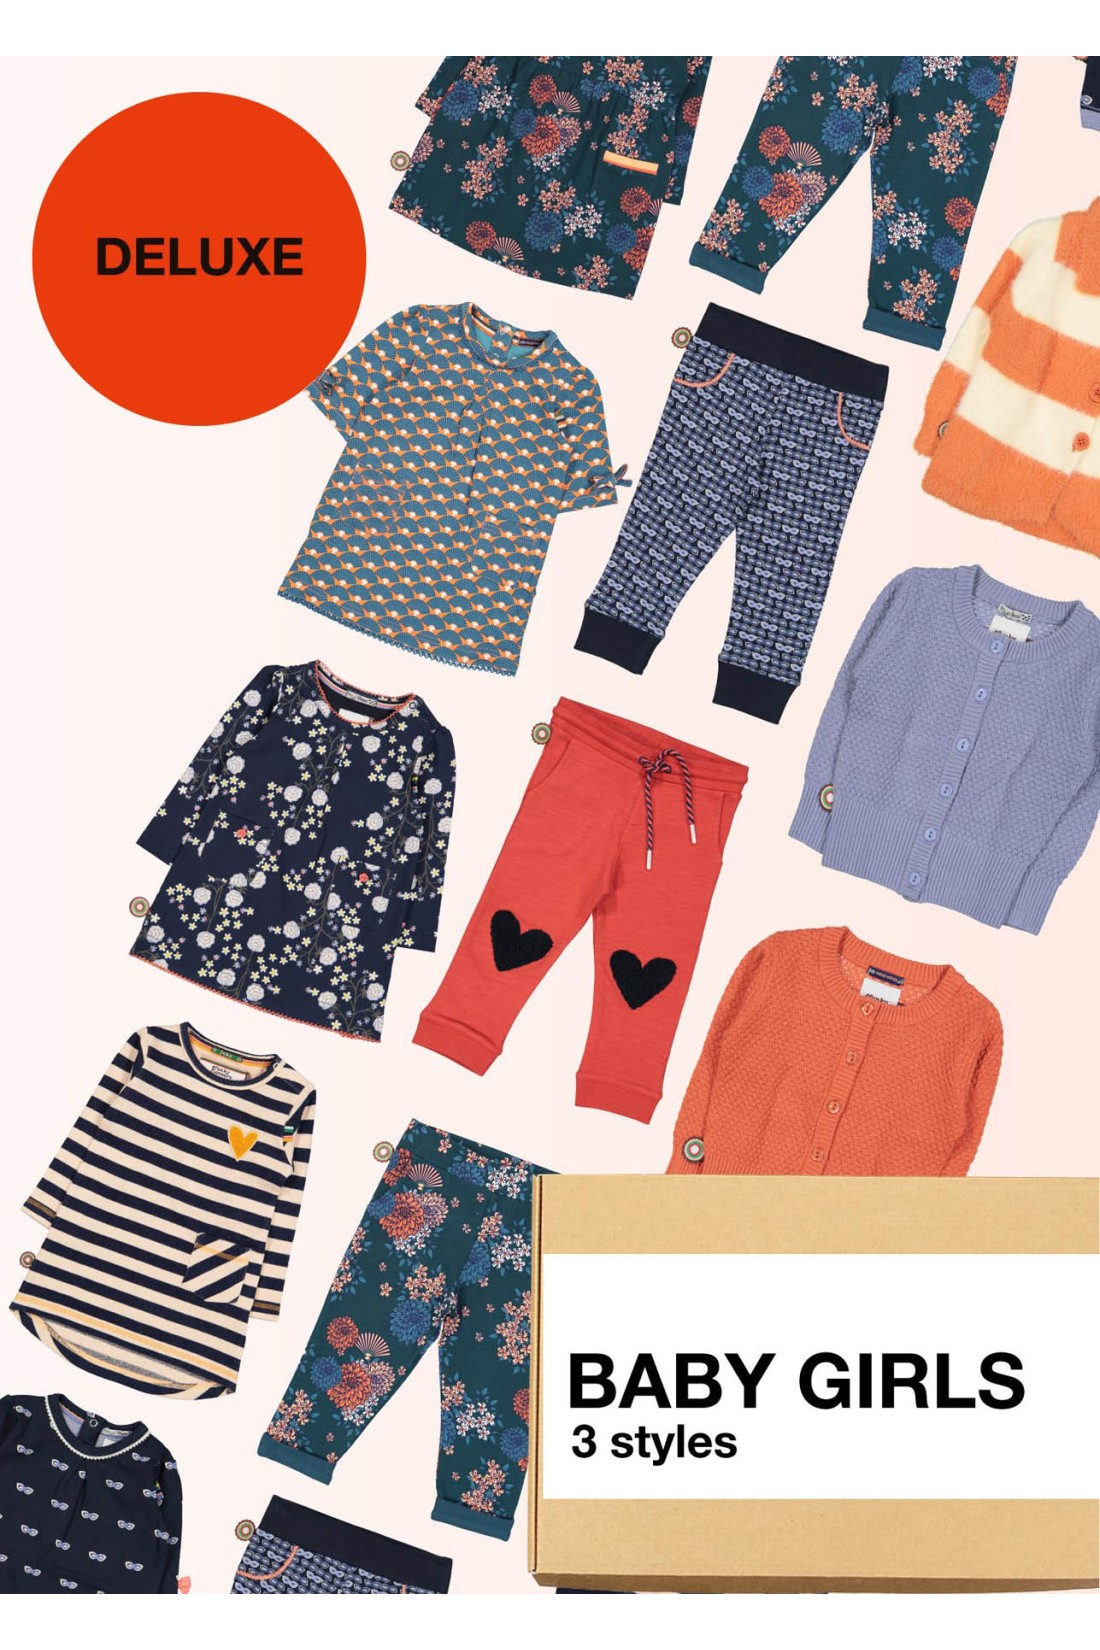 Surprise Box Baby Girls Matching Deluxe - 3 Styles